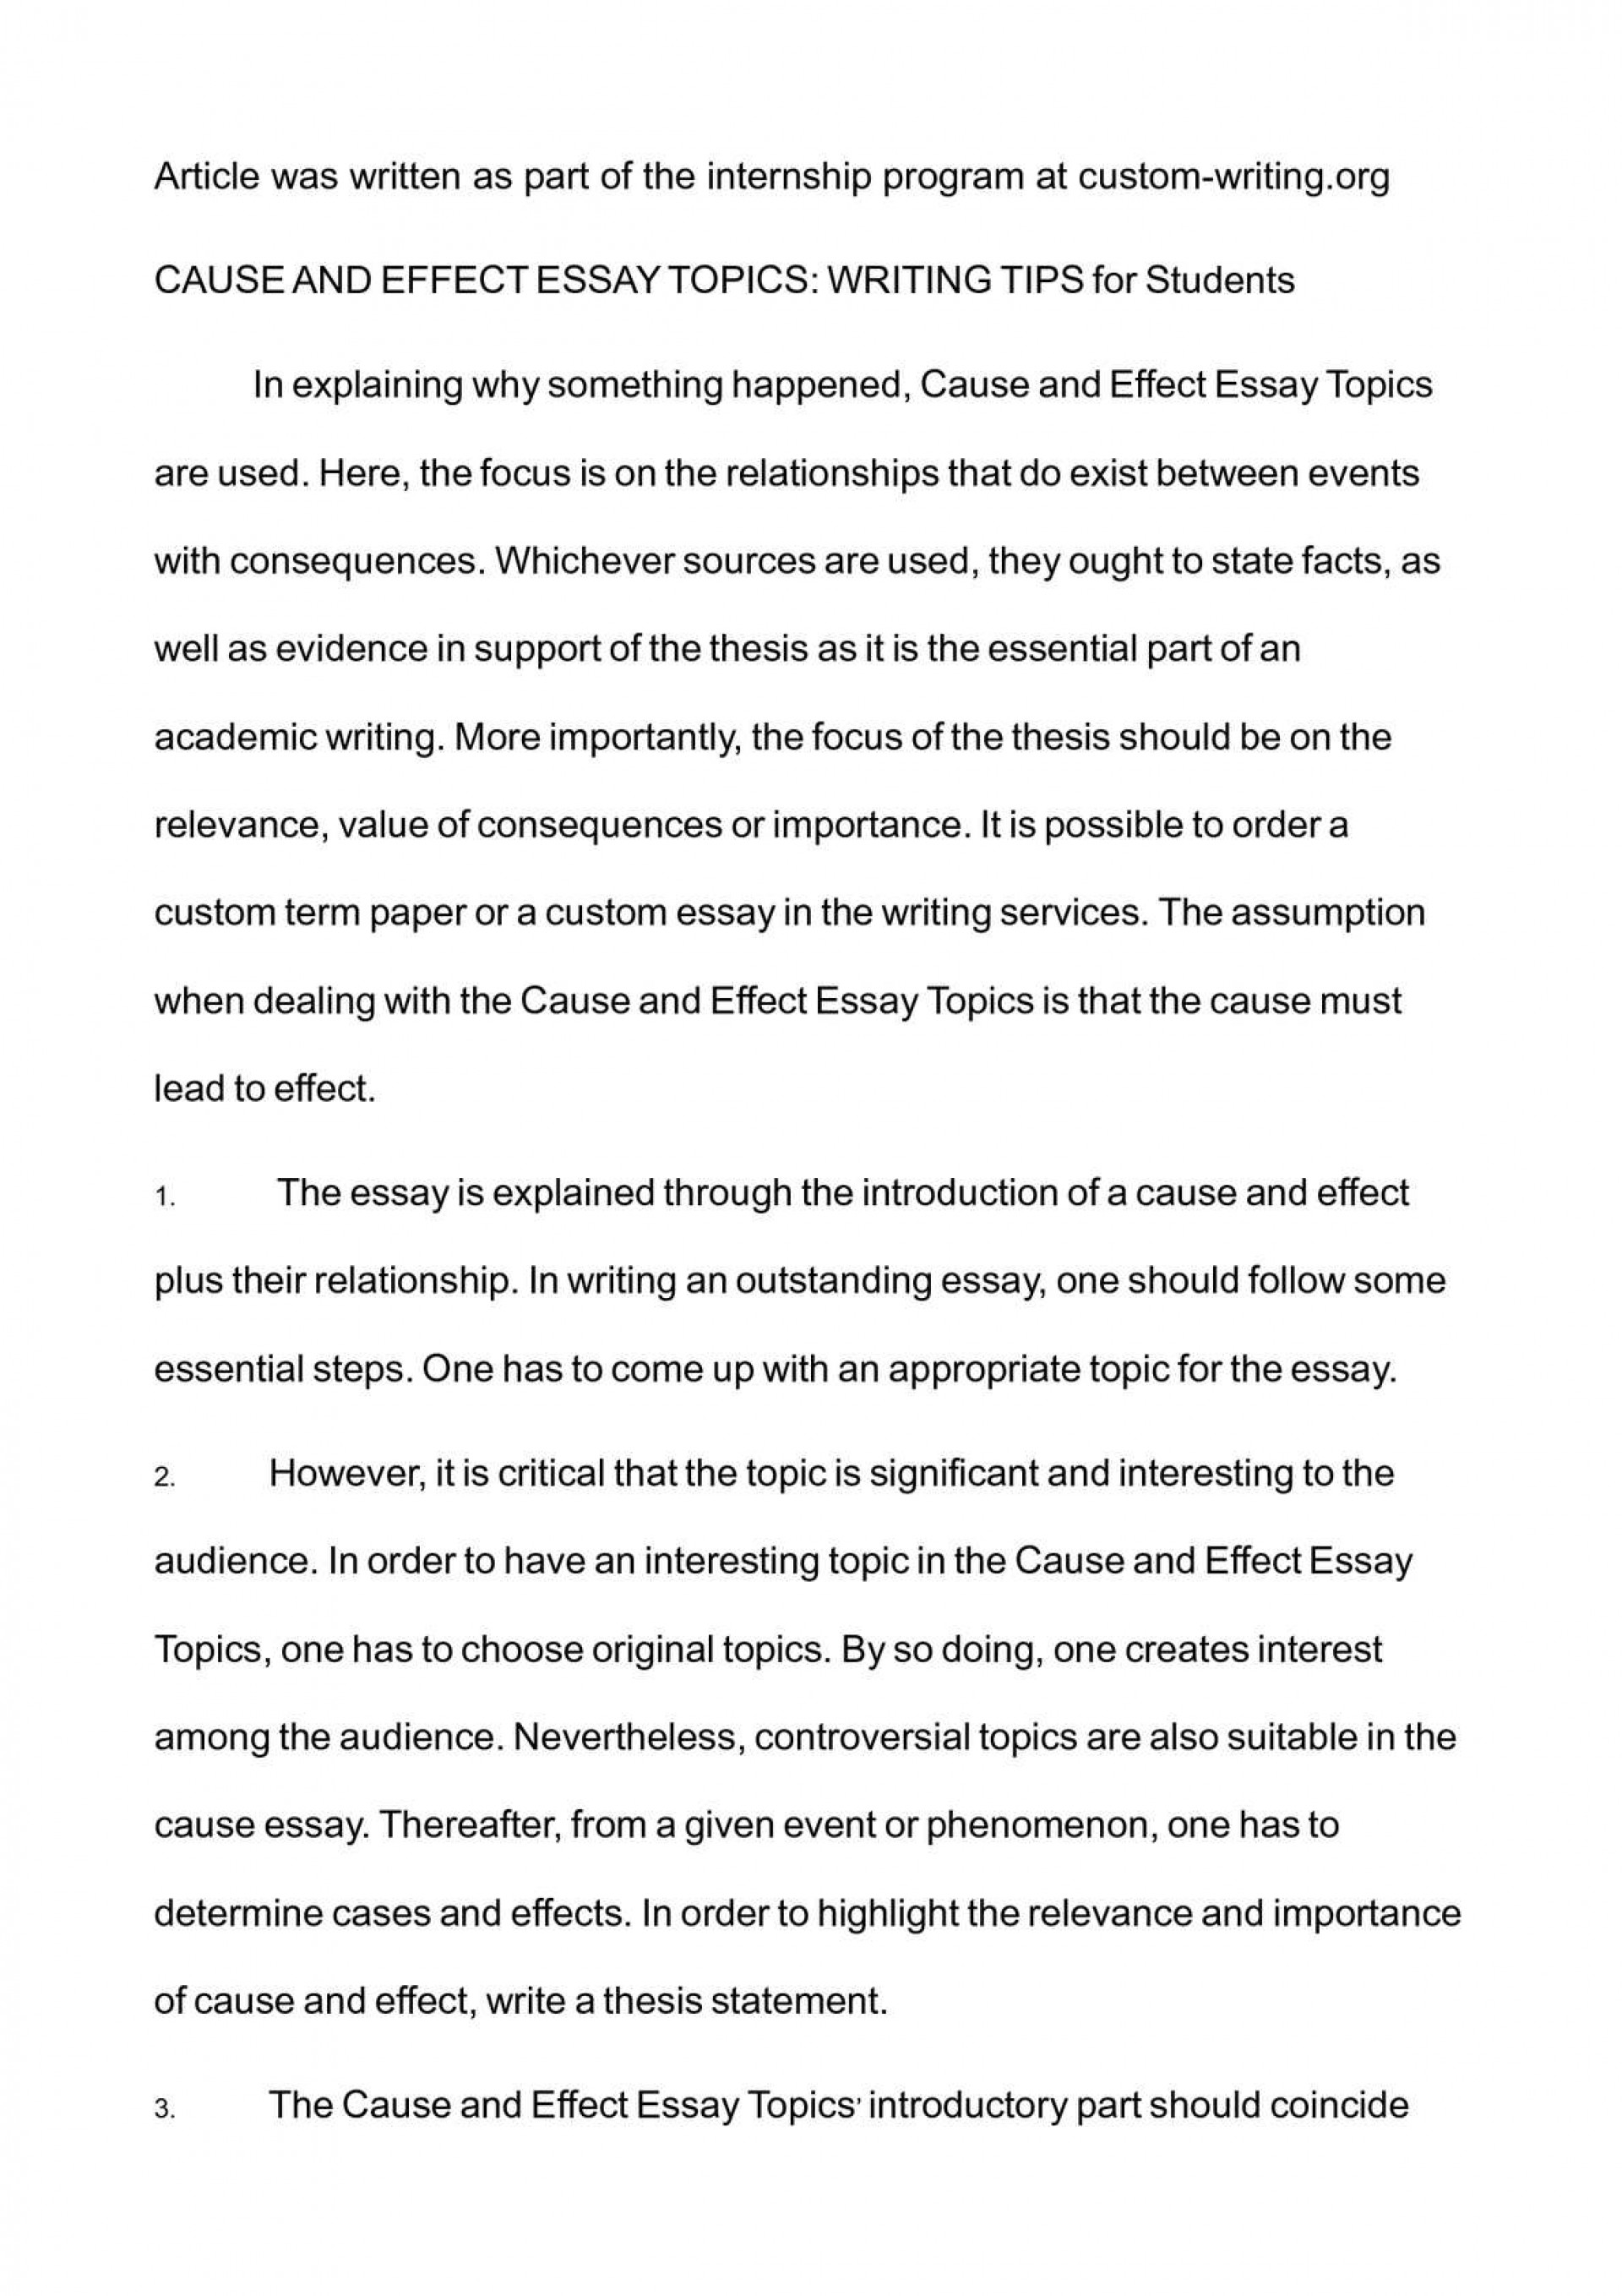 002 Essay Example P1 Cause And Effect Exceptional Topics High School College For Students 1920